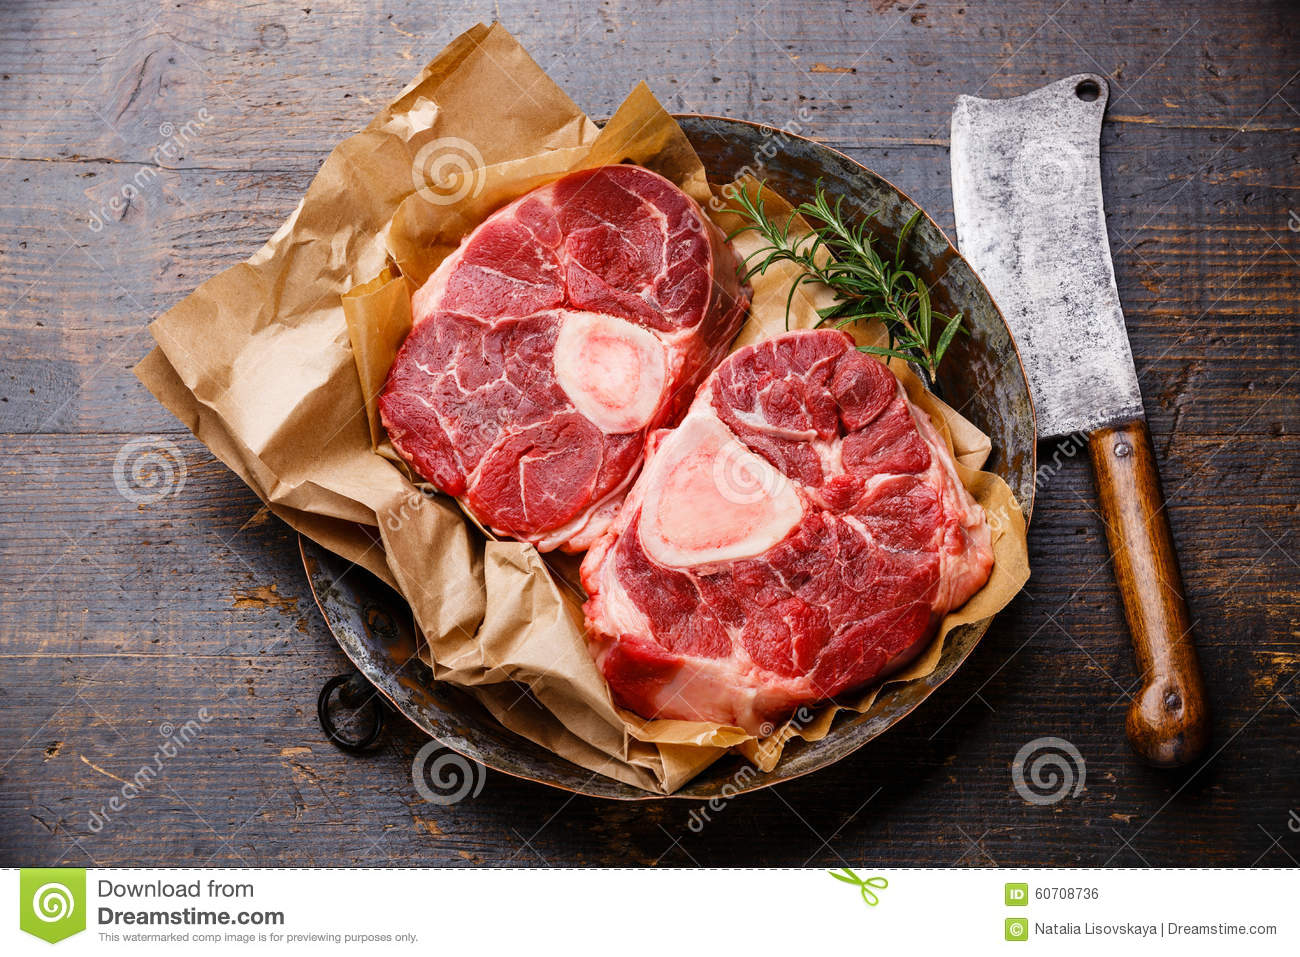 Raw Fresh Cross Cut Veal Shank For Making Osso Buco On Metal Cop.